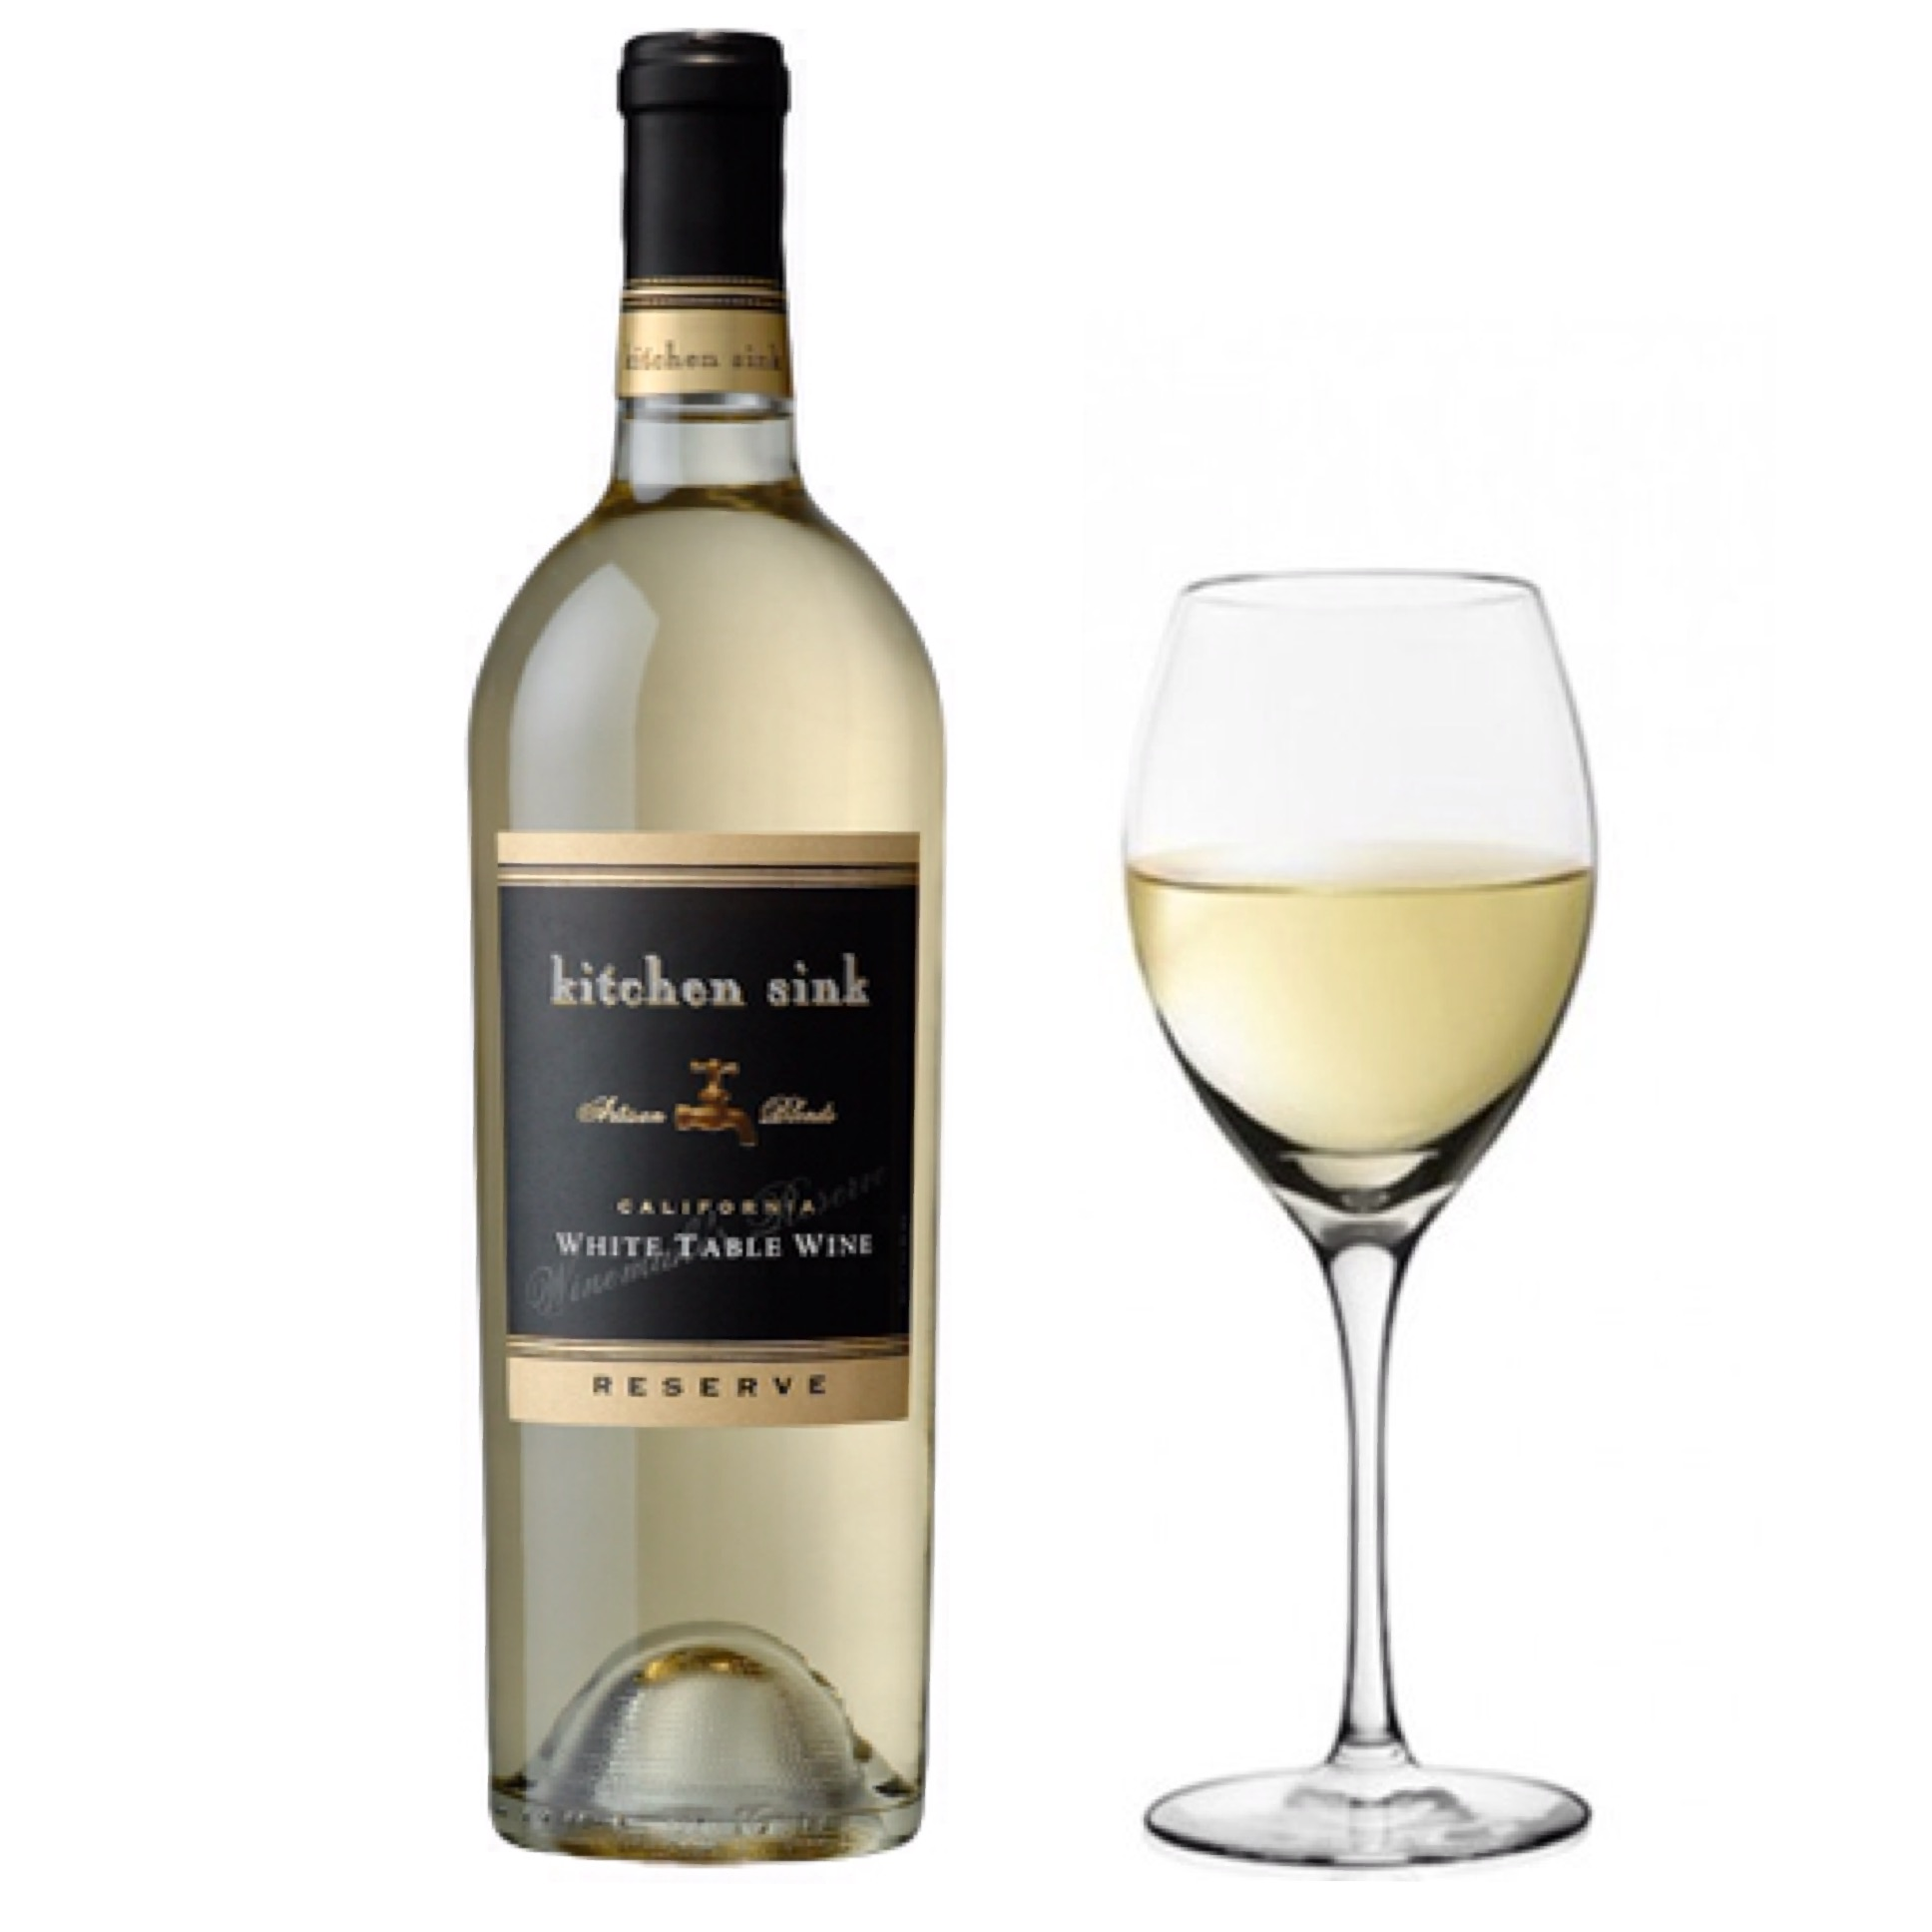 Ttb Wine Review Kitchen Sink White Table Wine